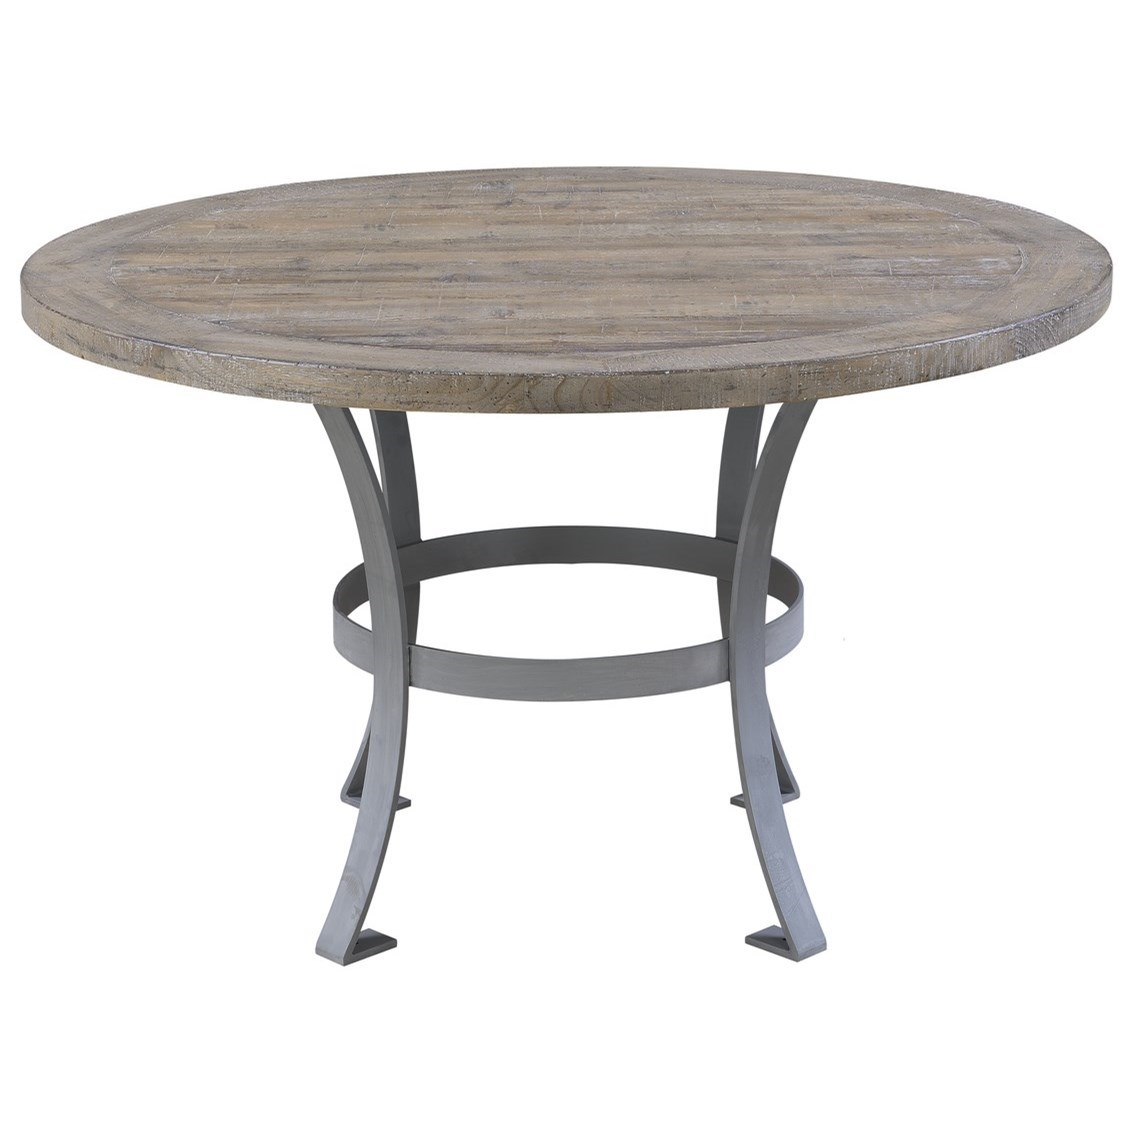 Interlude Round Dining Table with Metal Base by Emerald at Suburban Furniture